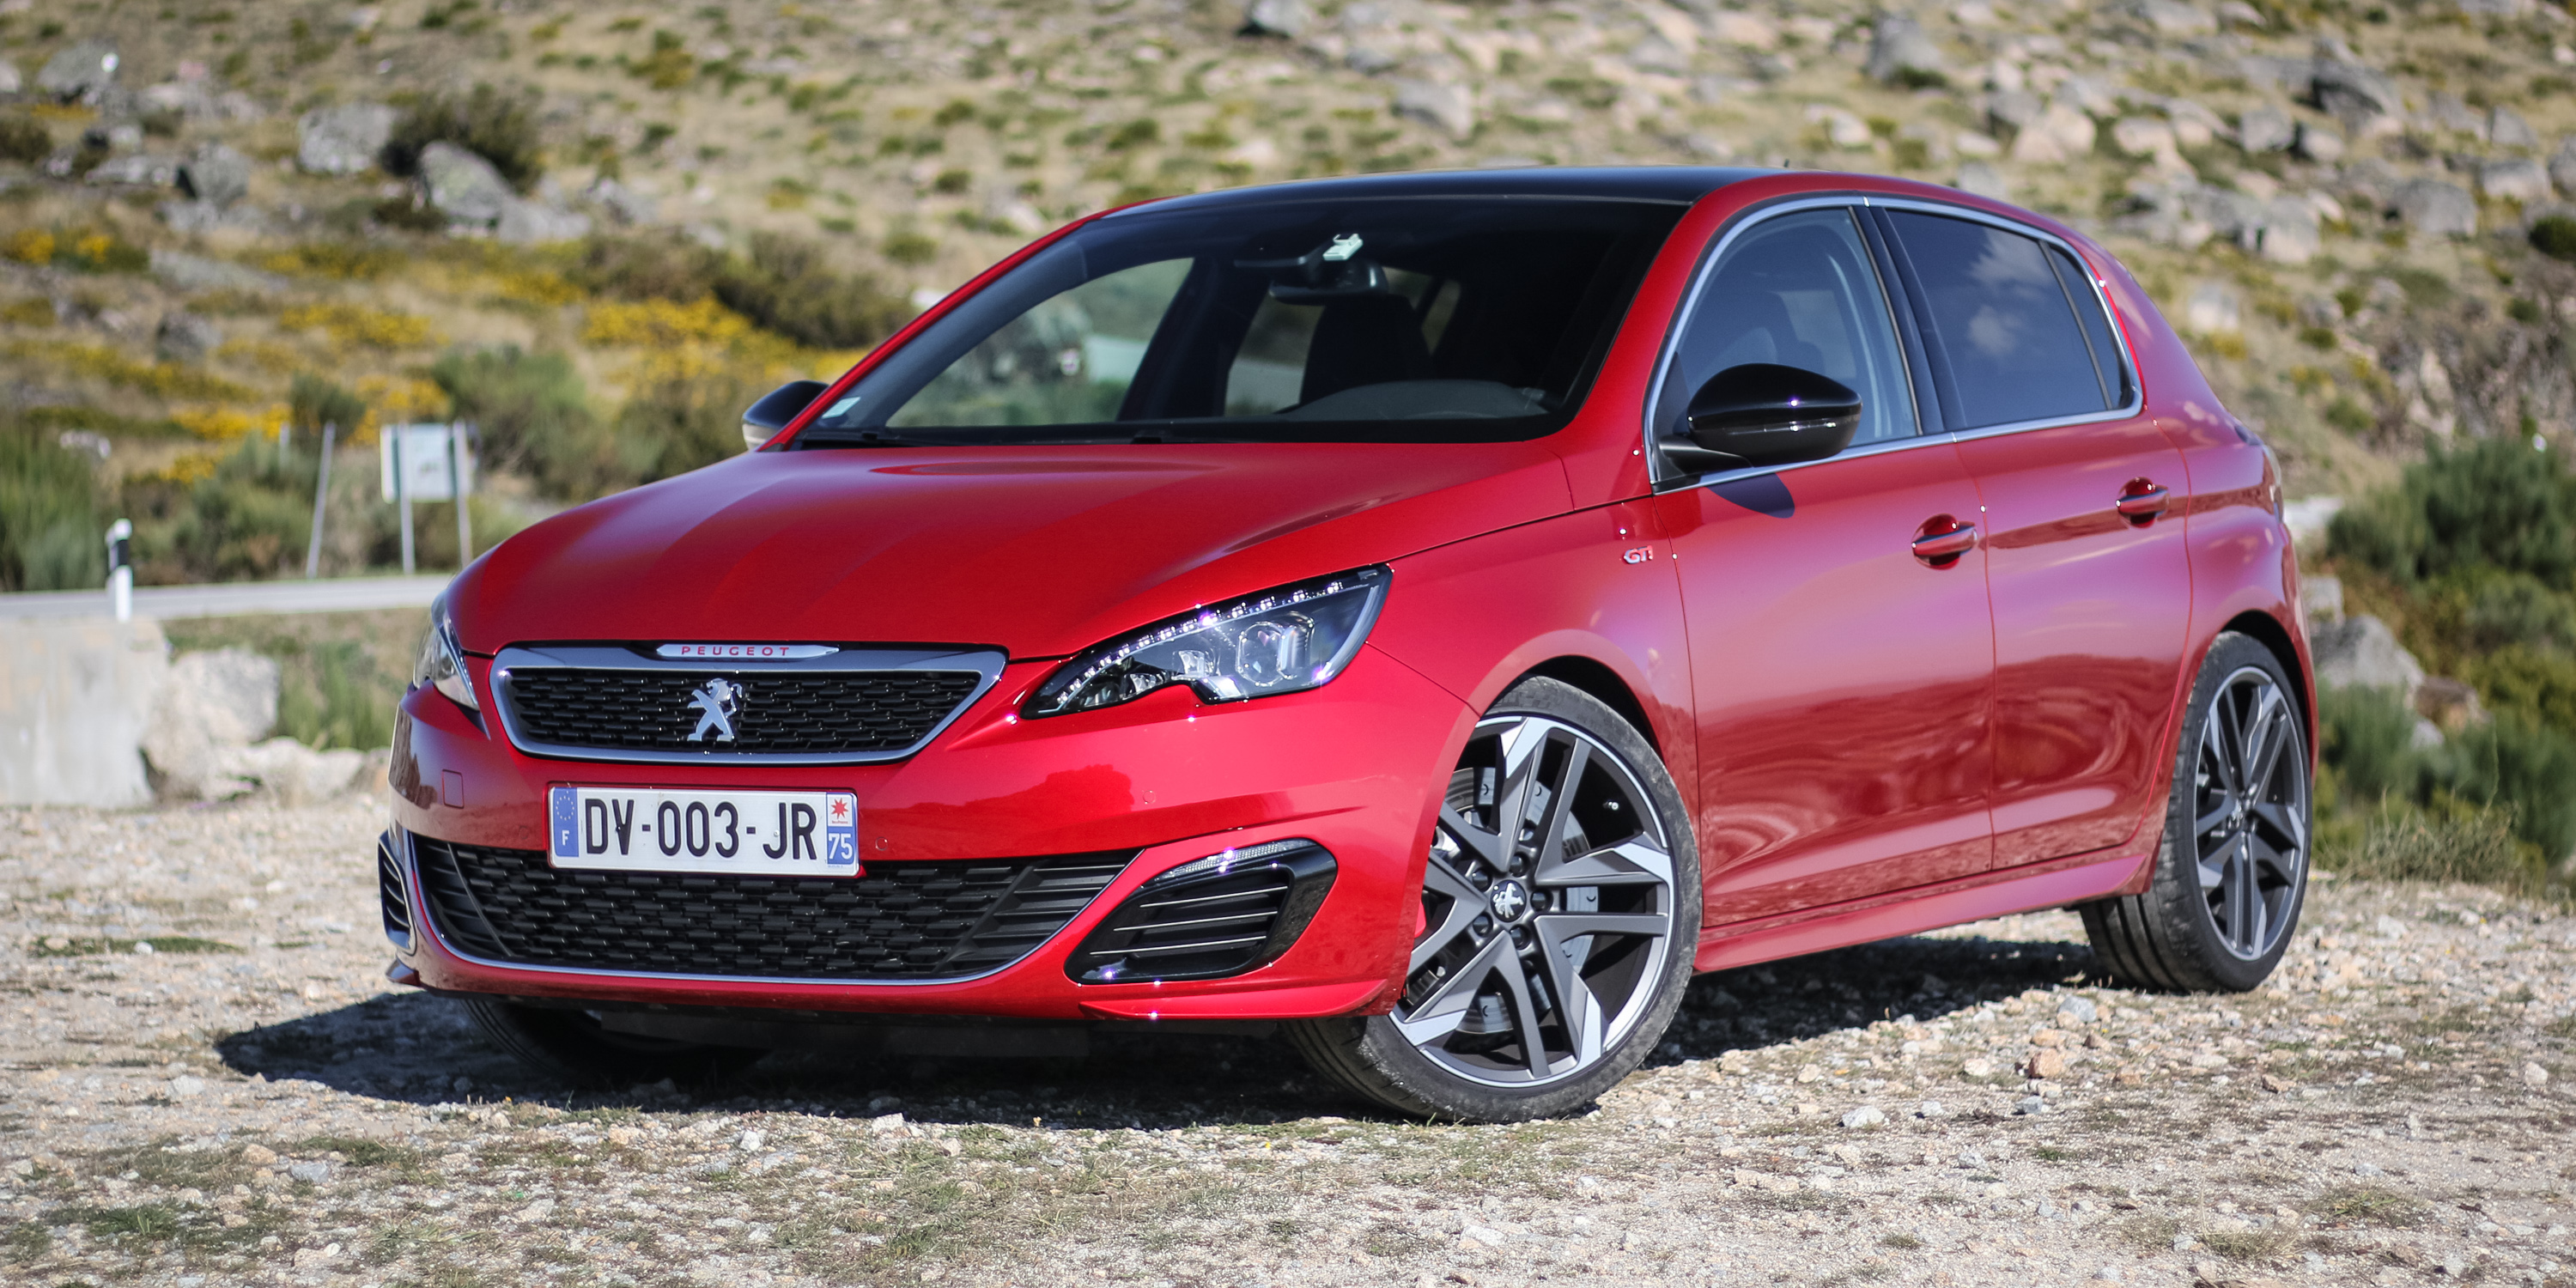 2016 peugeot 308 gti review photos caradvice. Black Bedroom Furniture Sets. Home Design Ideas